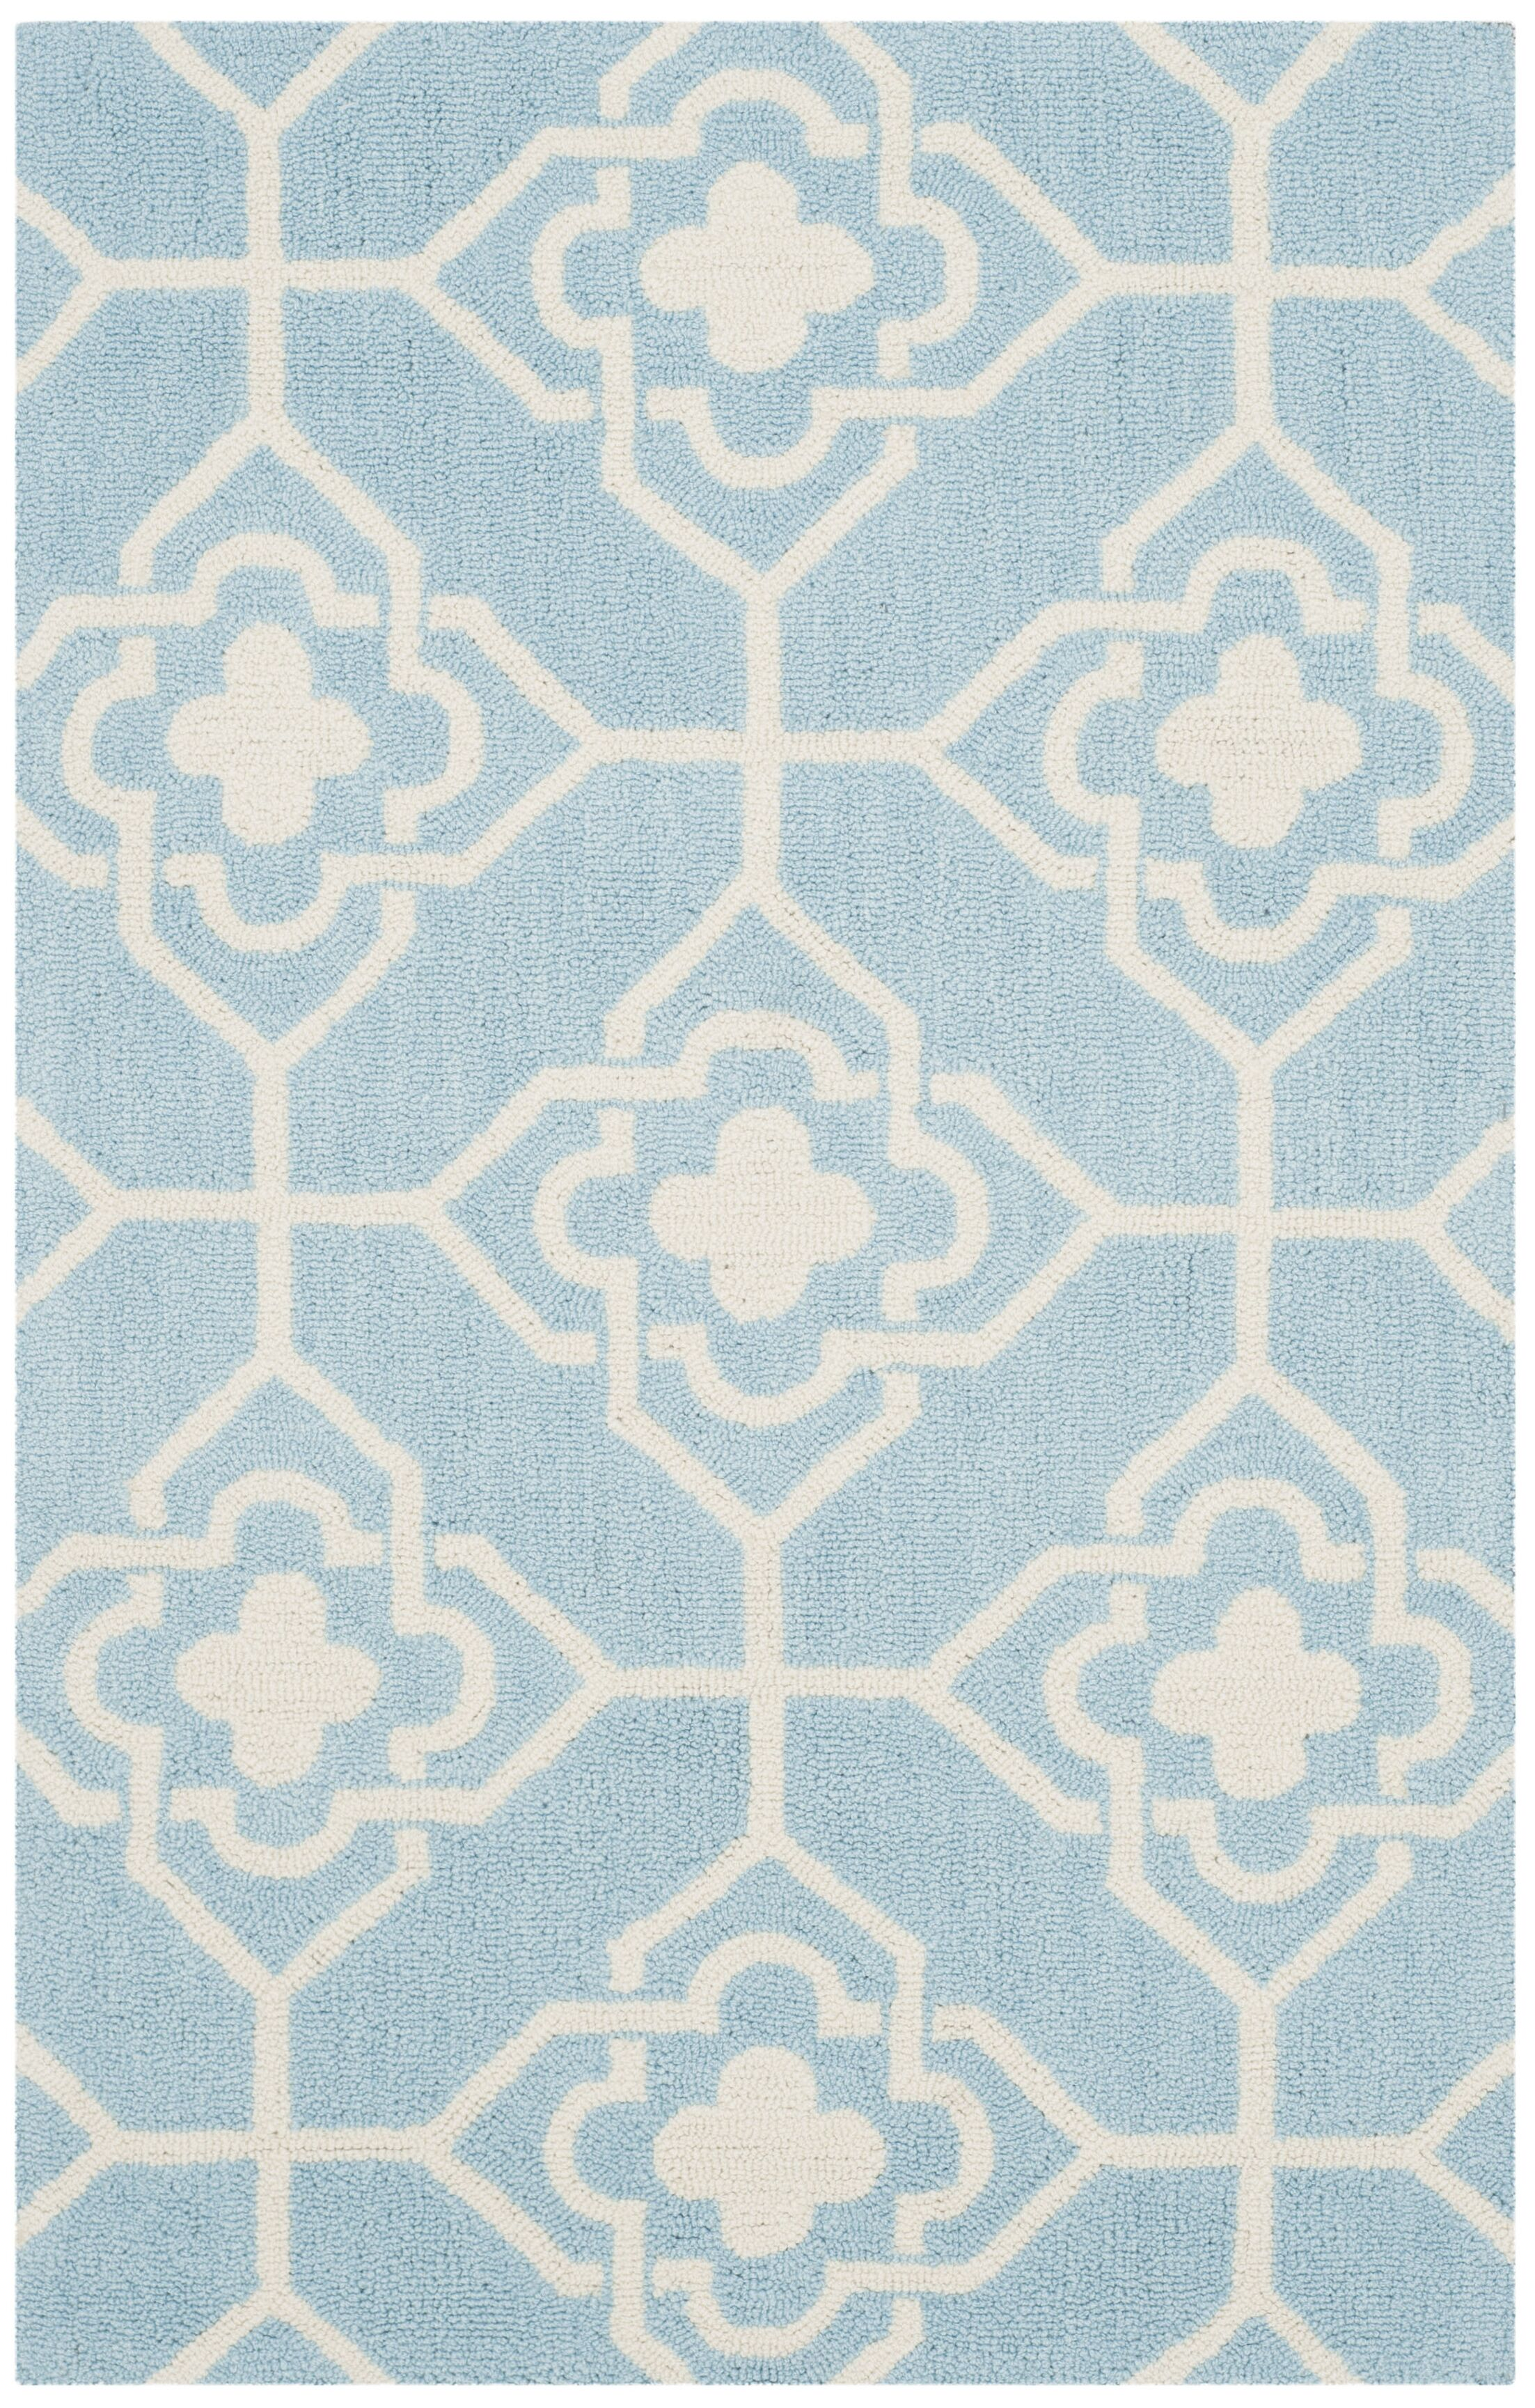 Rue Sauvage Hand-Hooked Light Blue/Ivory Indoor/Outdoor Area Rug Rug Size: Rectangle 8' x 10'